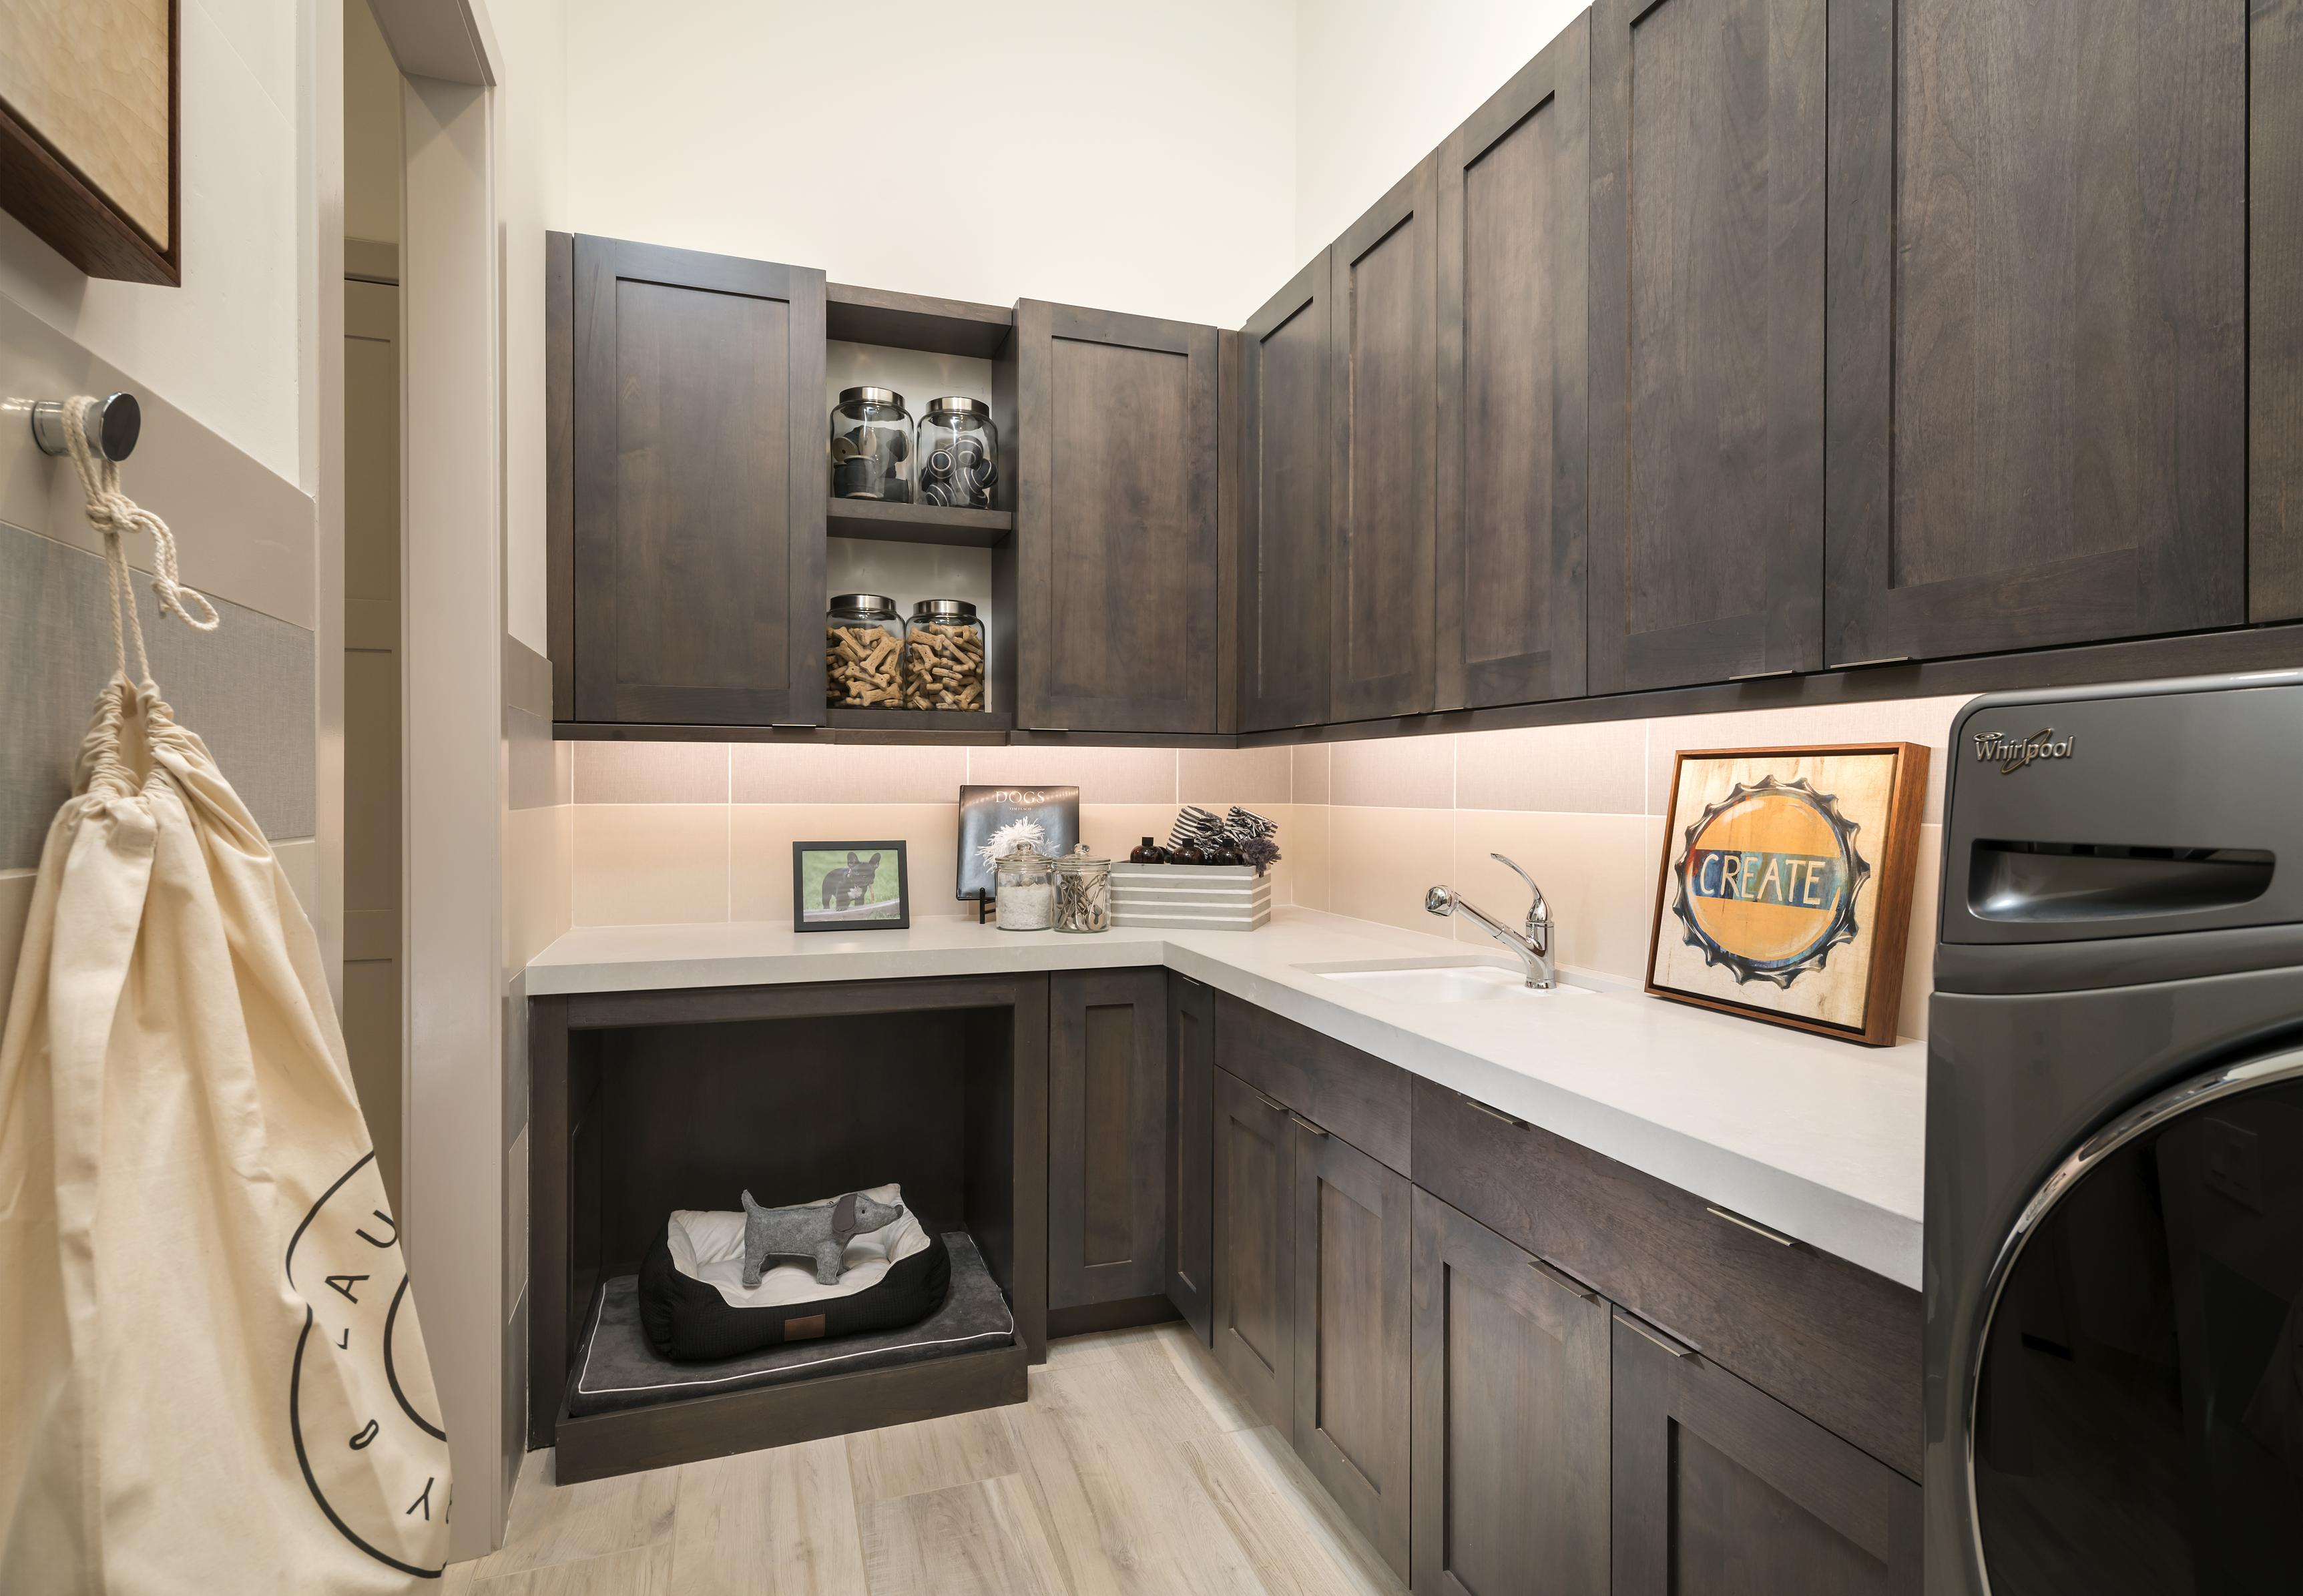 Laundry room with modern design and wooden cabinets.